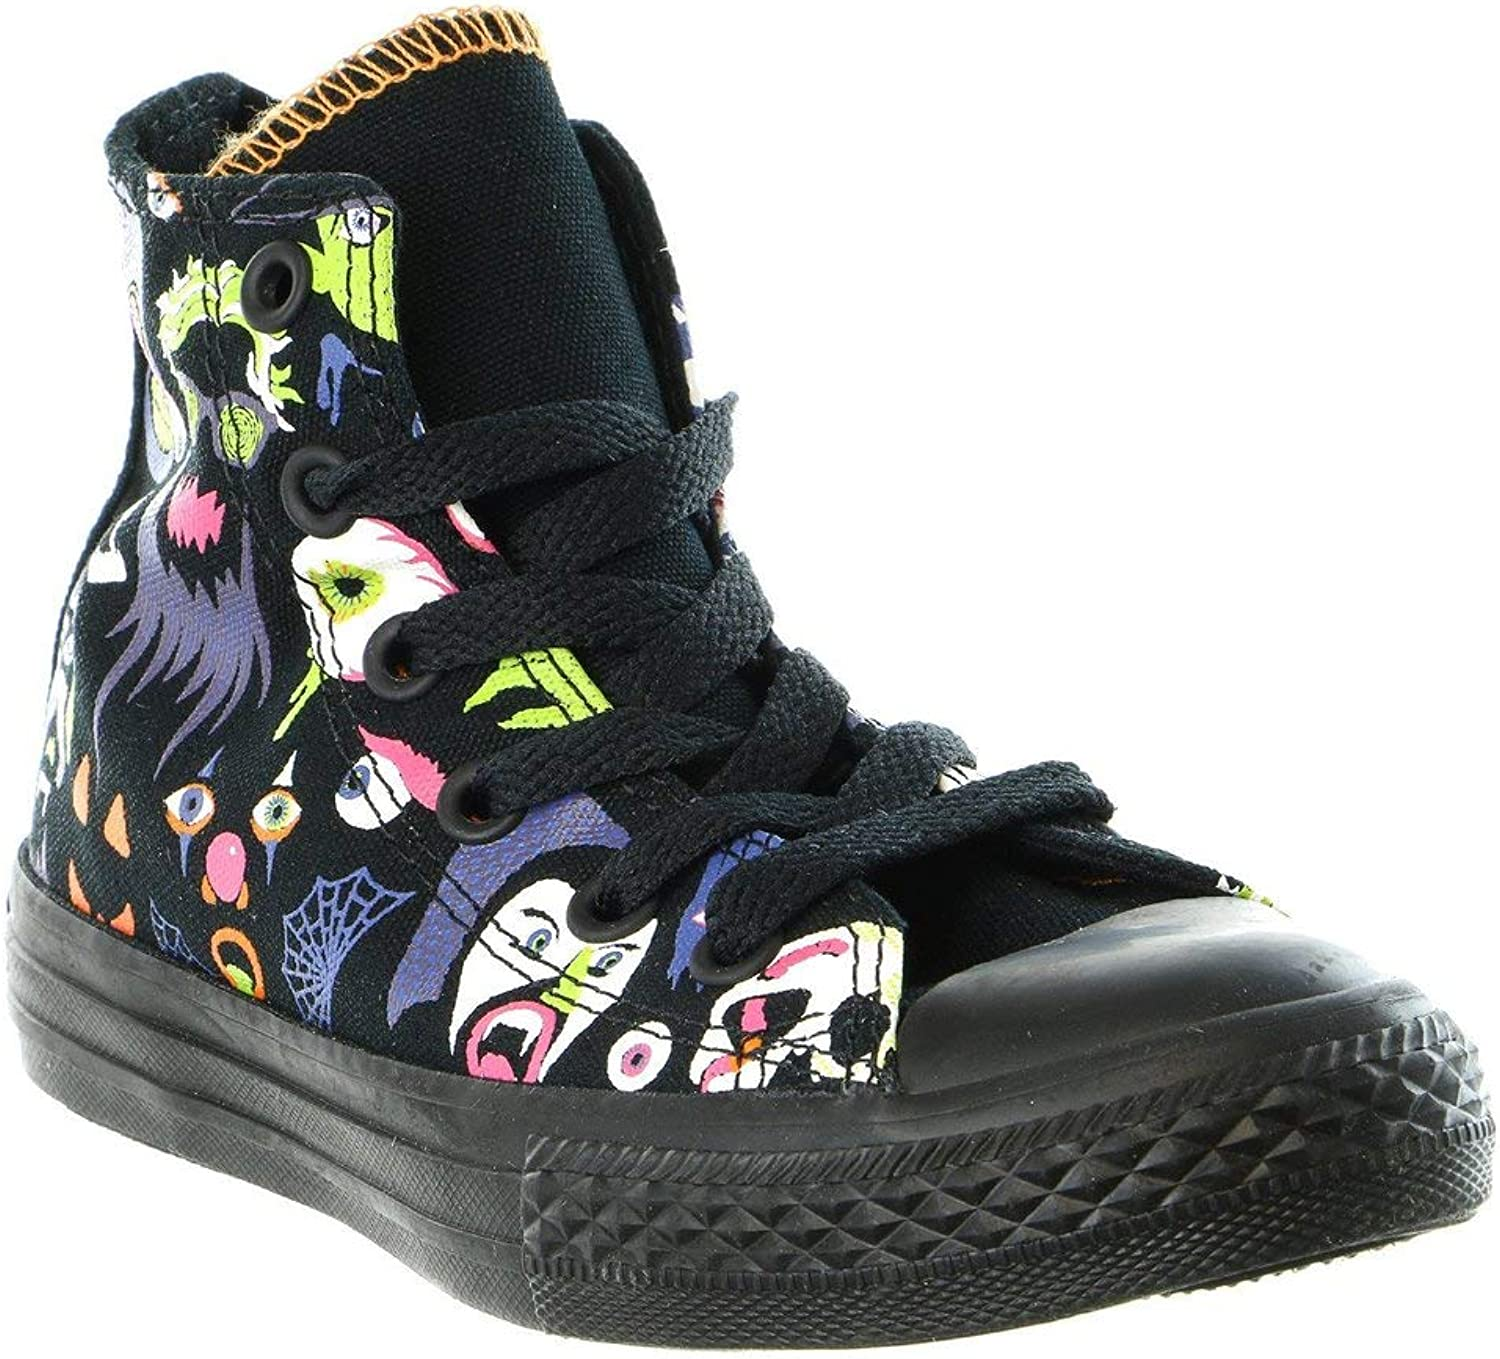 Converse Kid's Chuck Taylor All Star Seasonal Hi Fashion Turnschuhe schuhe, schwarz Bold Lime schwarz, 12